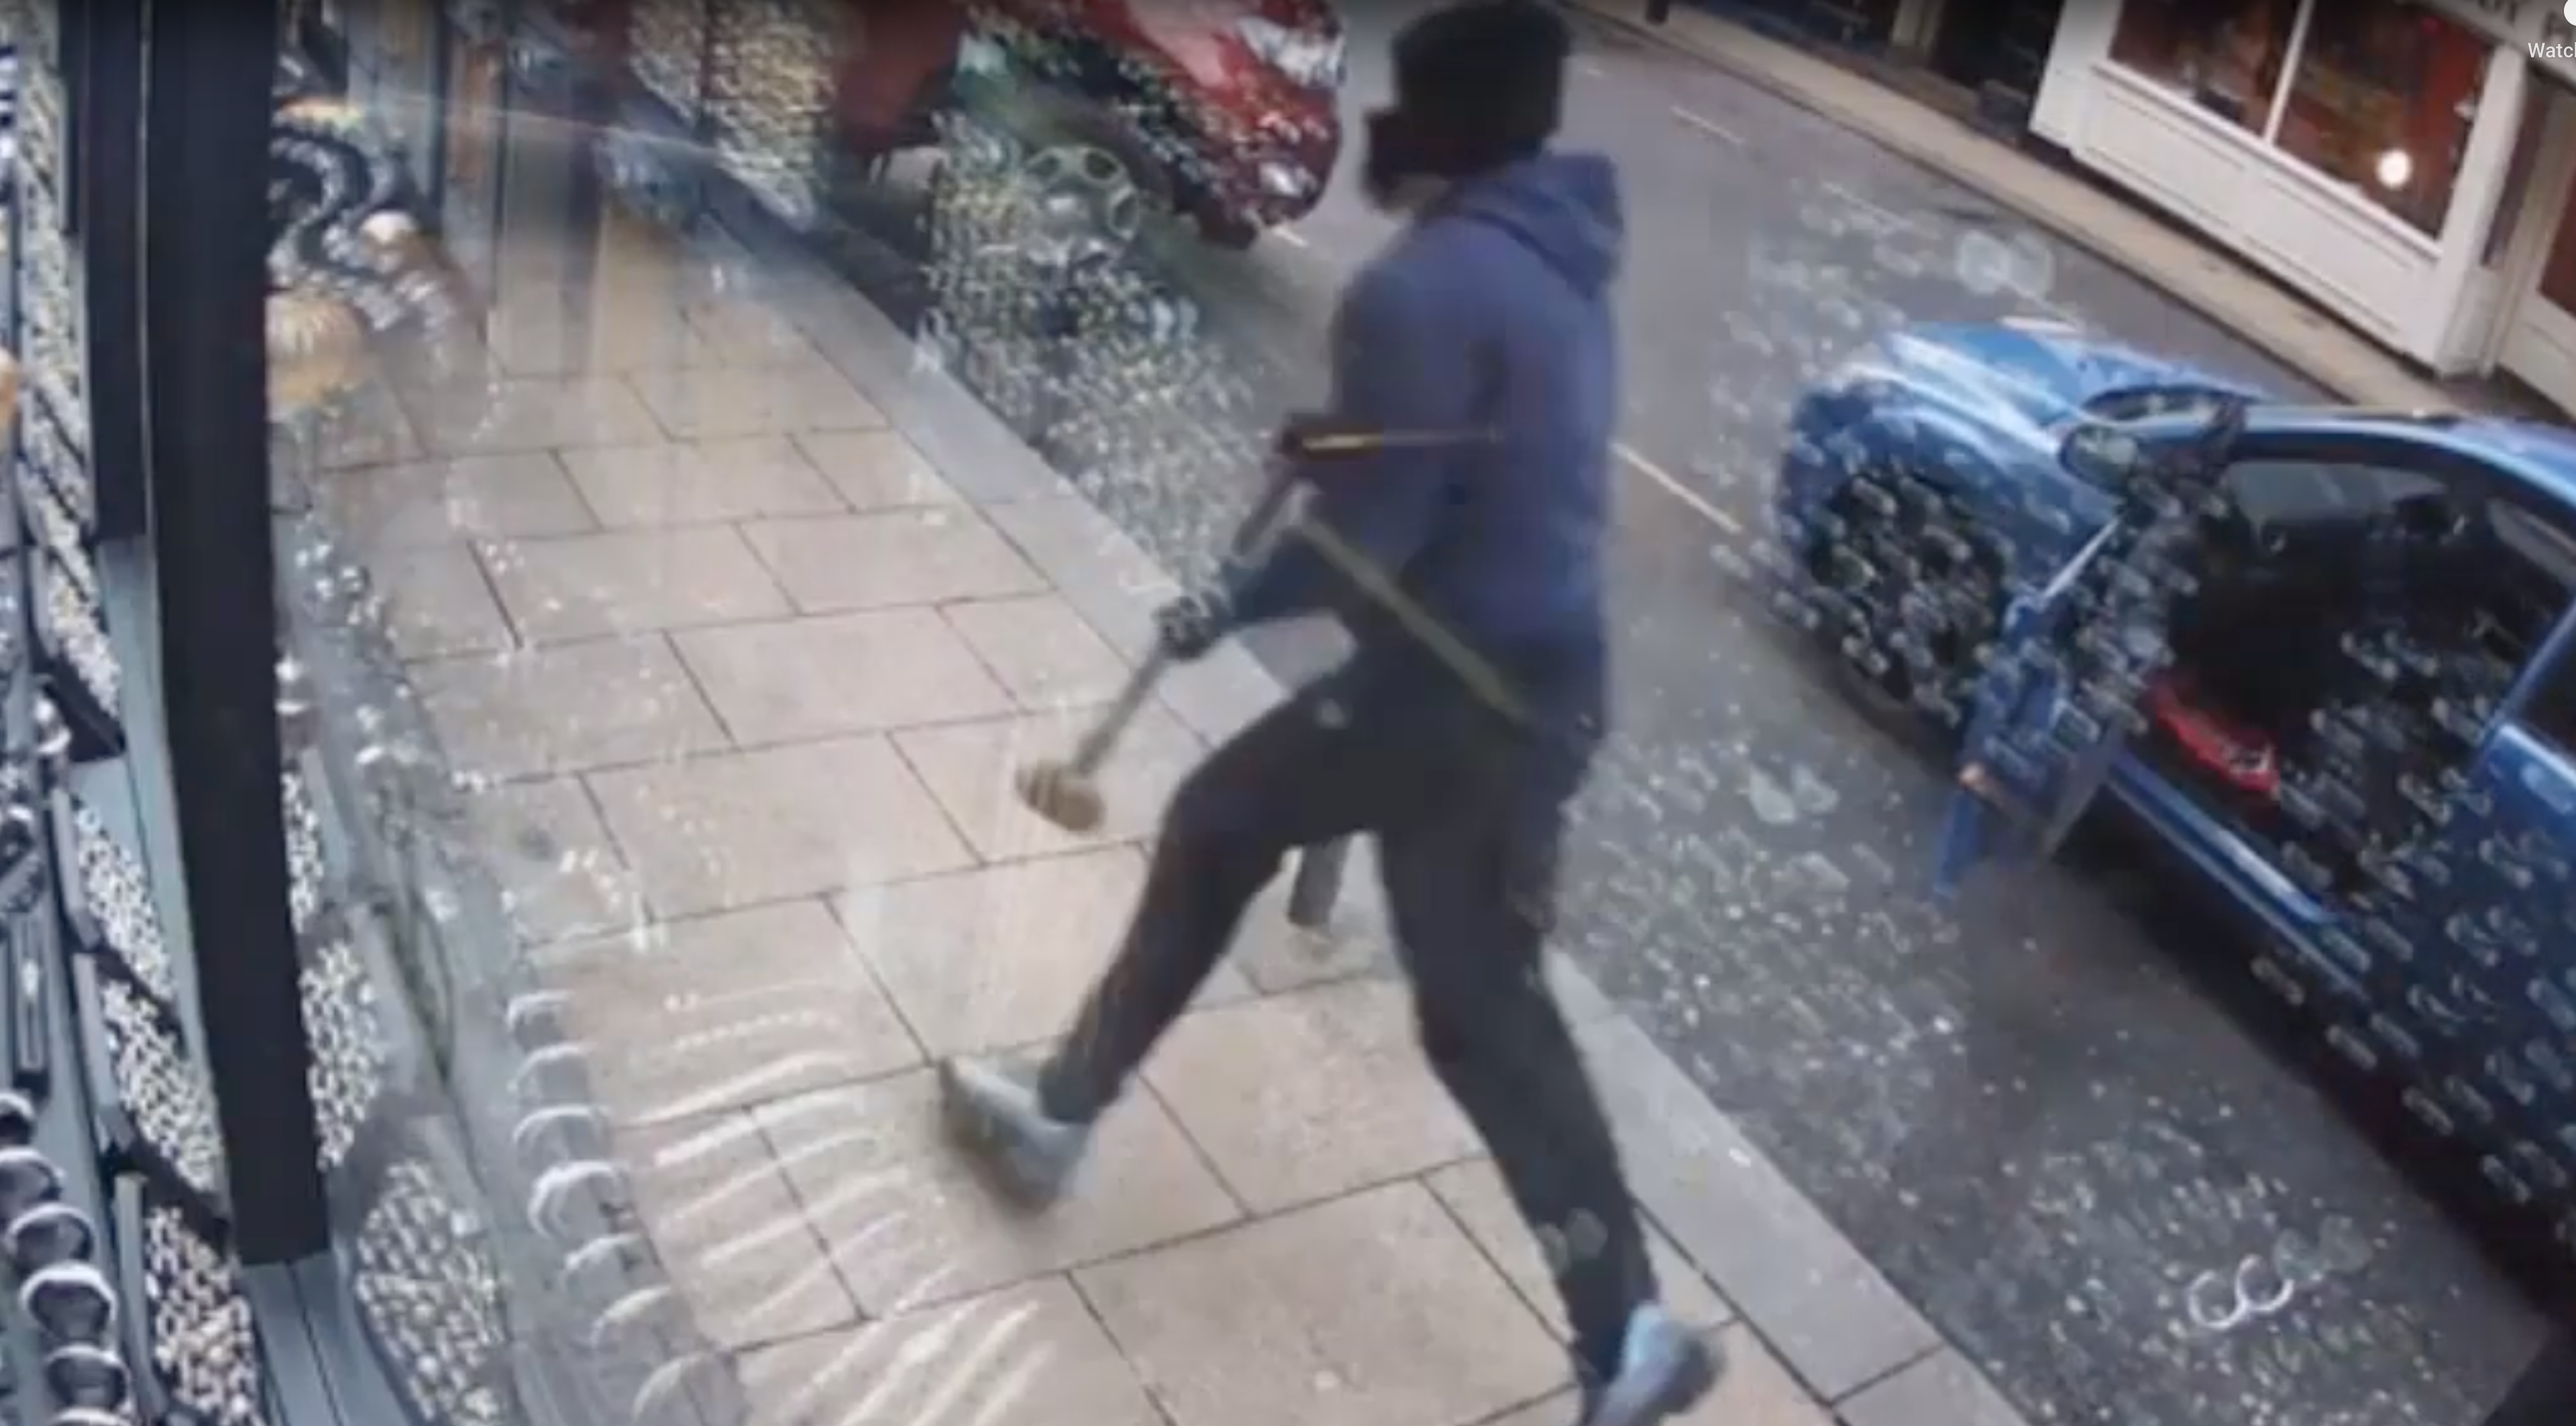 Dramatic CCTV shows Kitchen approach the Leeds jewellery shop. (West Yorkshire Police)